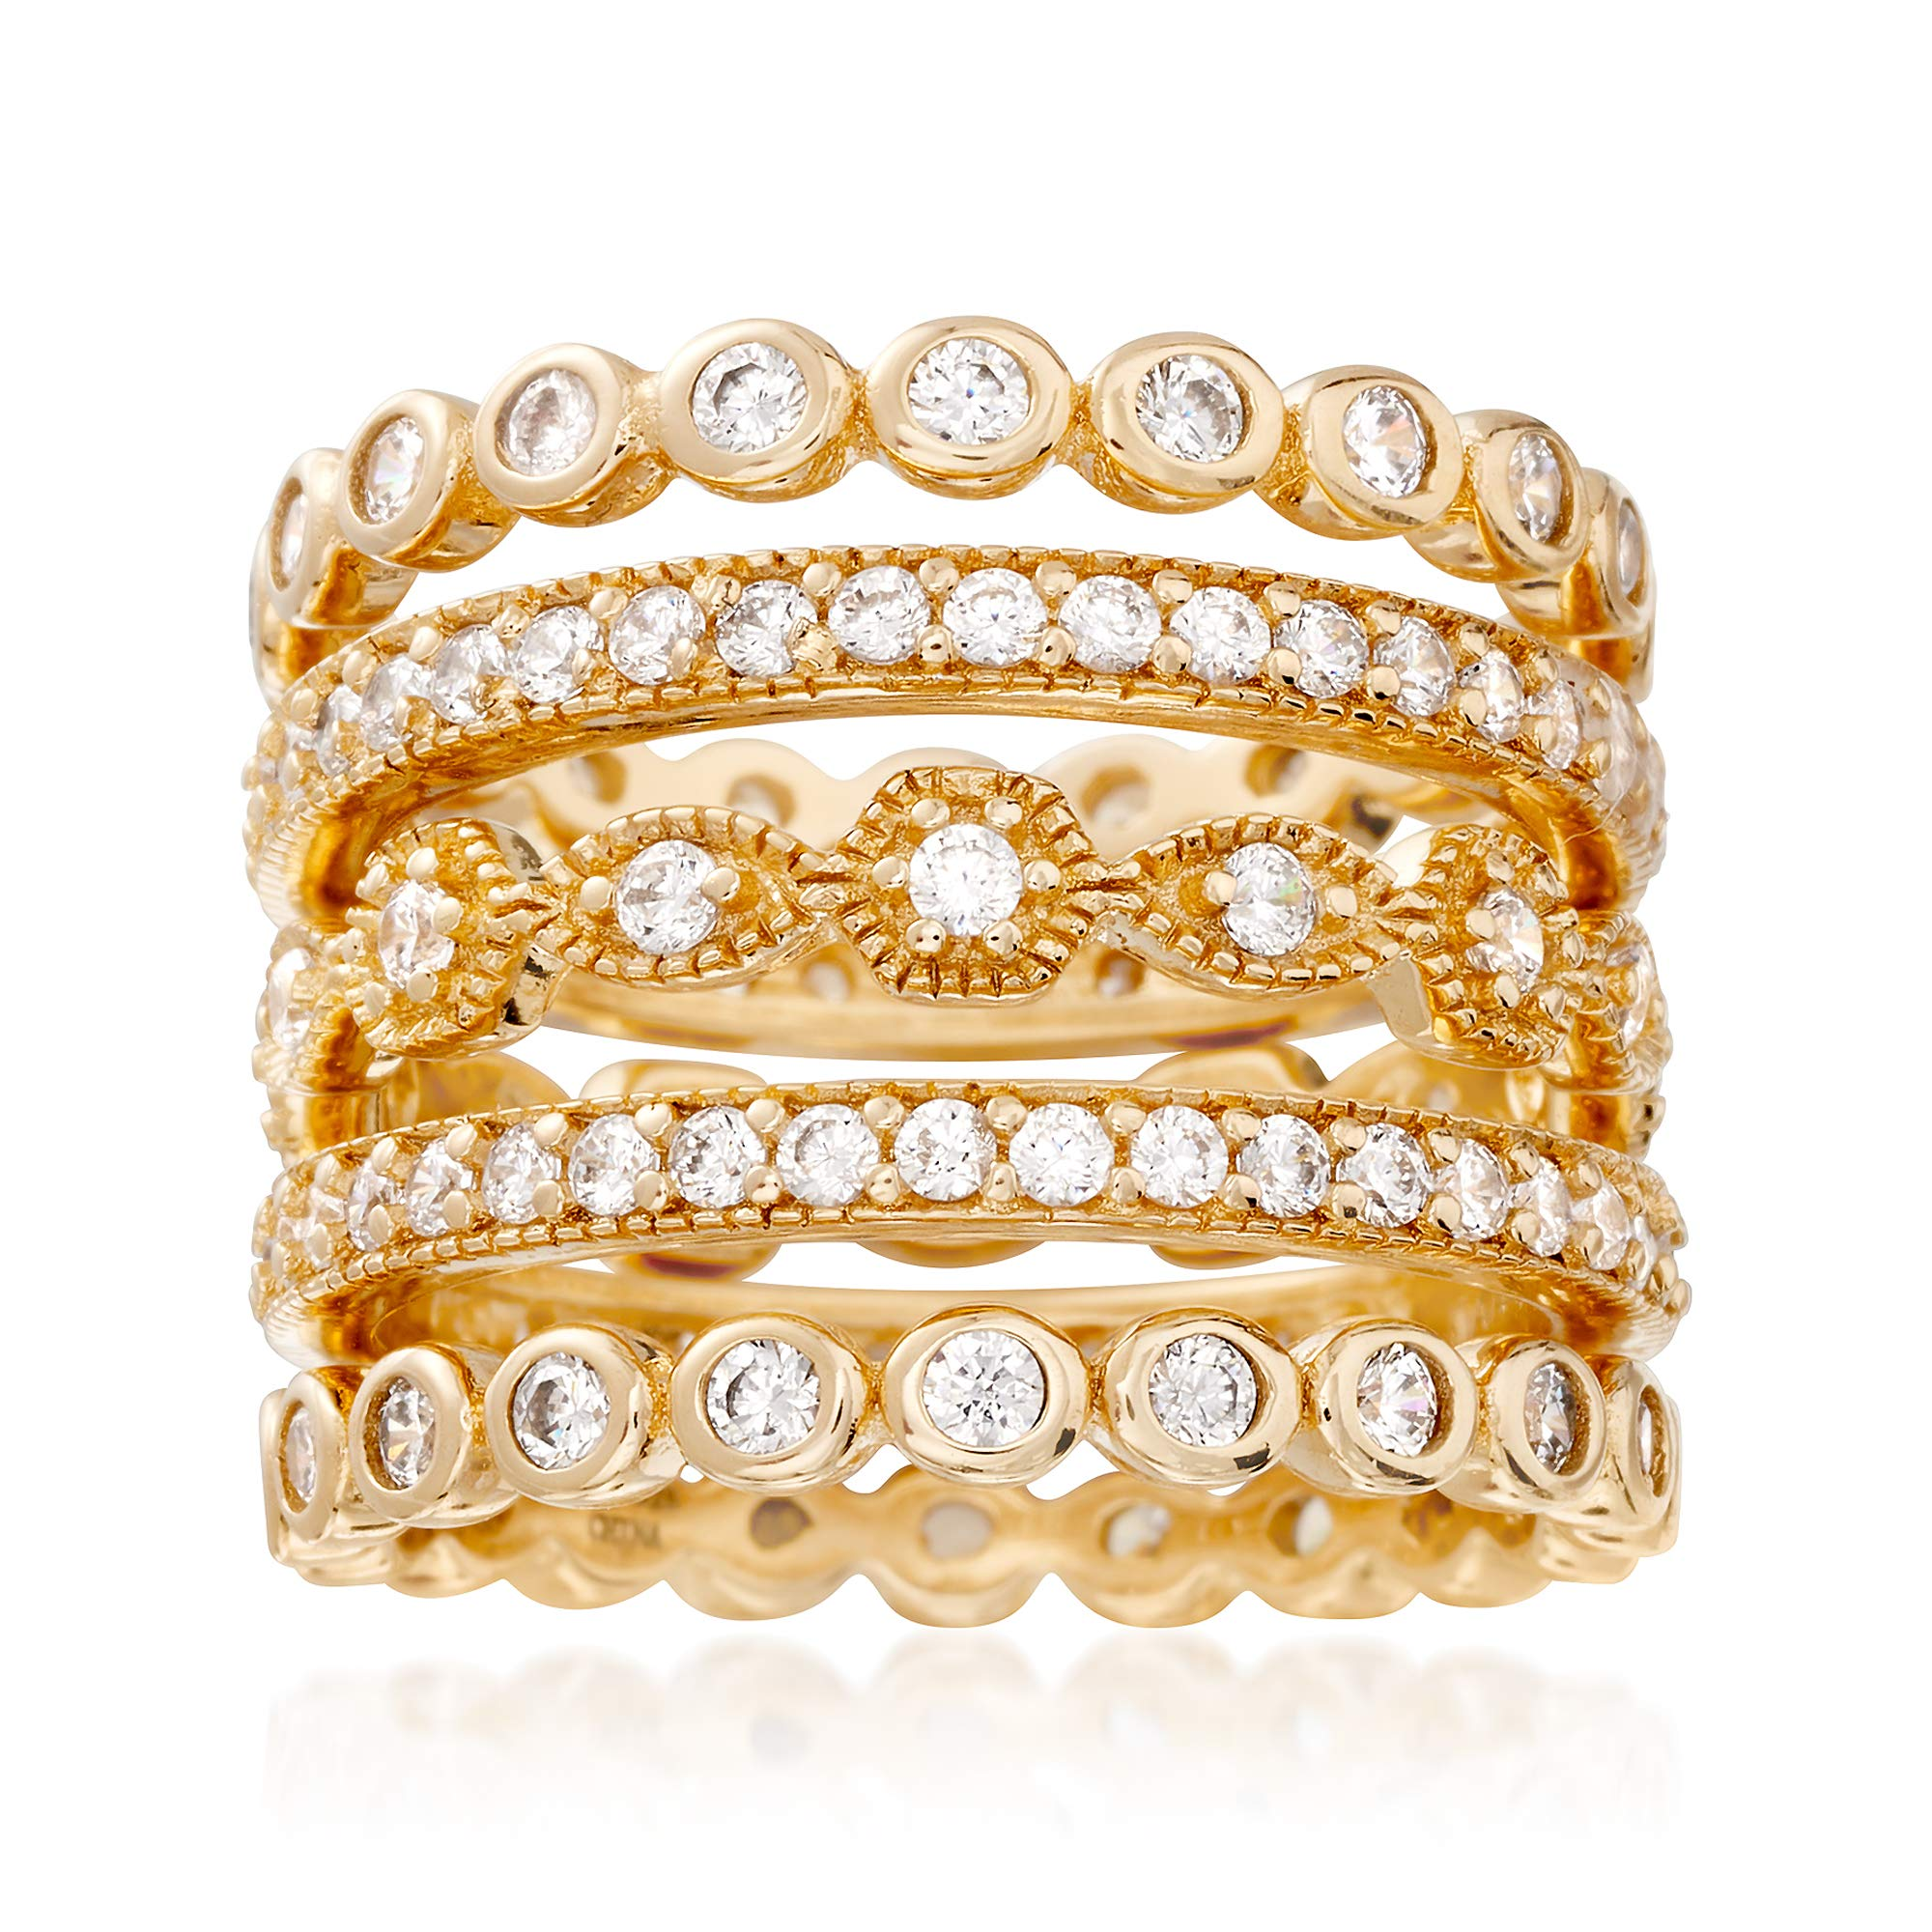 Ross-Simons 2.80 ct. t.w. CZ Jewelry Set: Five Eternity Bands in 14kt Gold Over Sterling